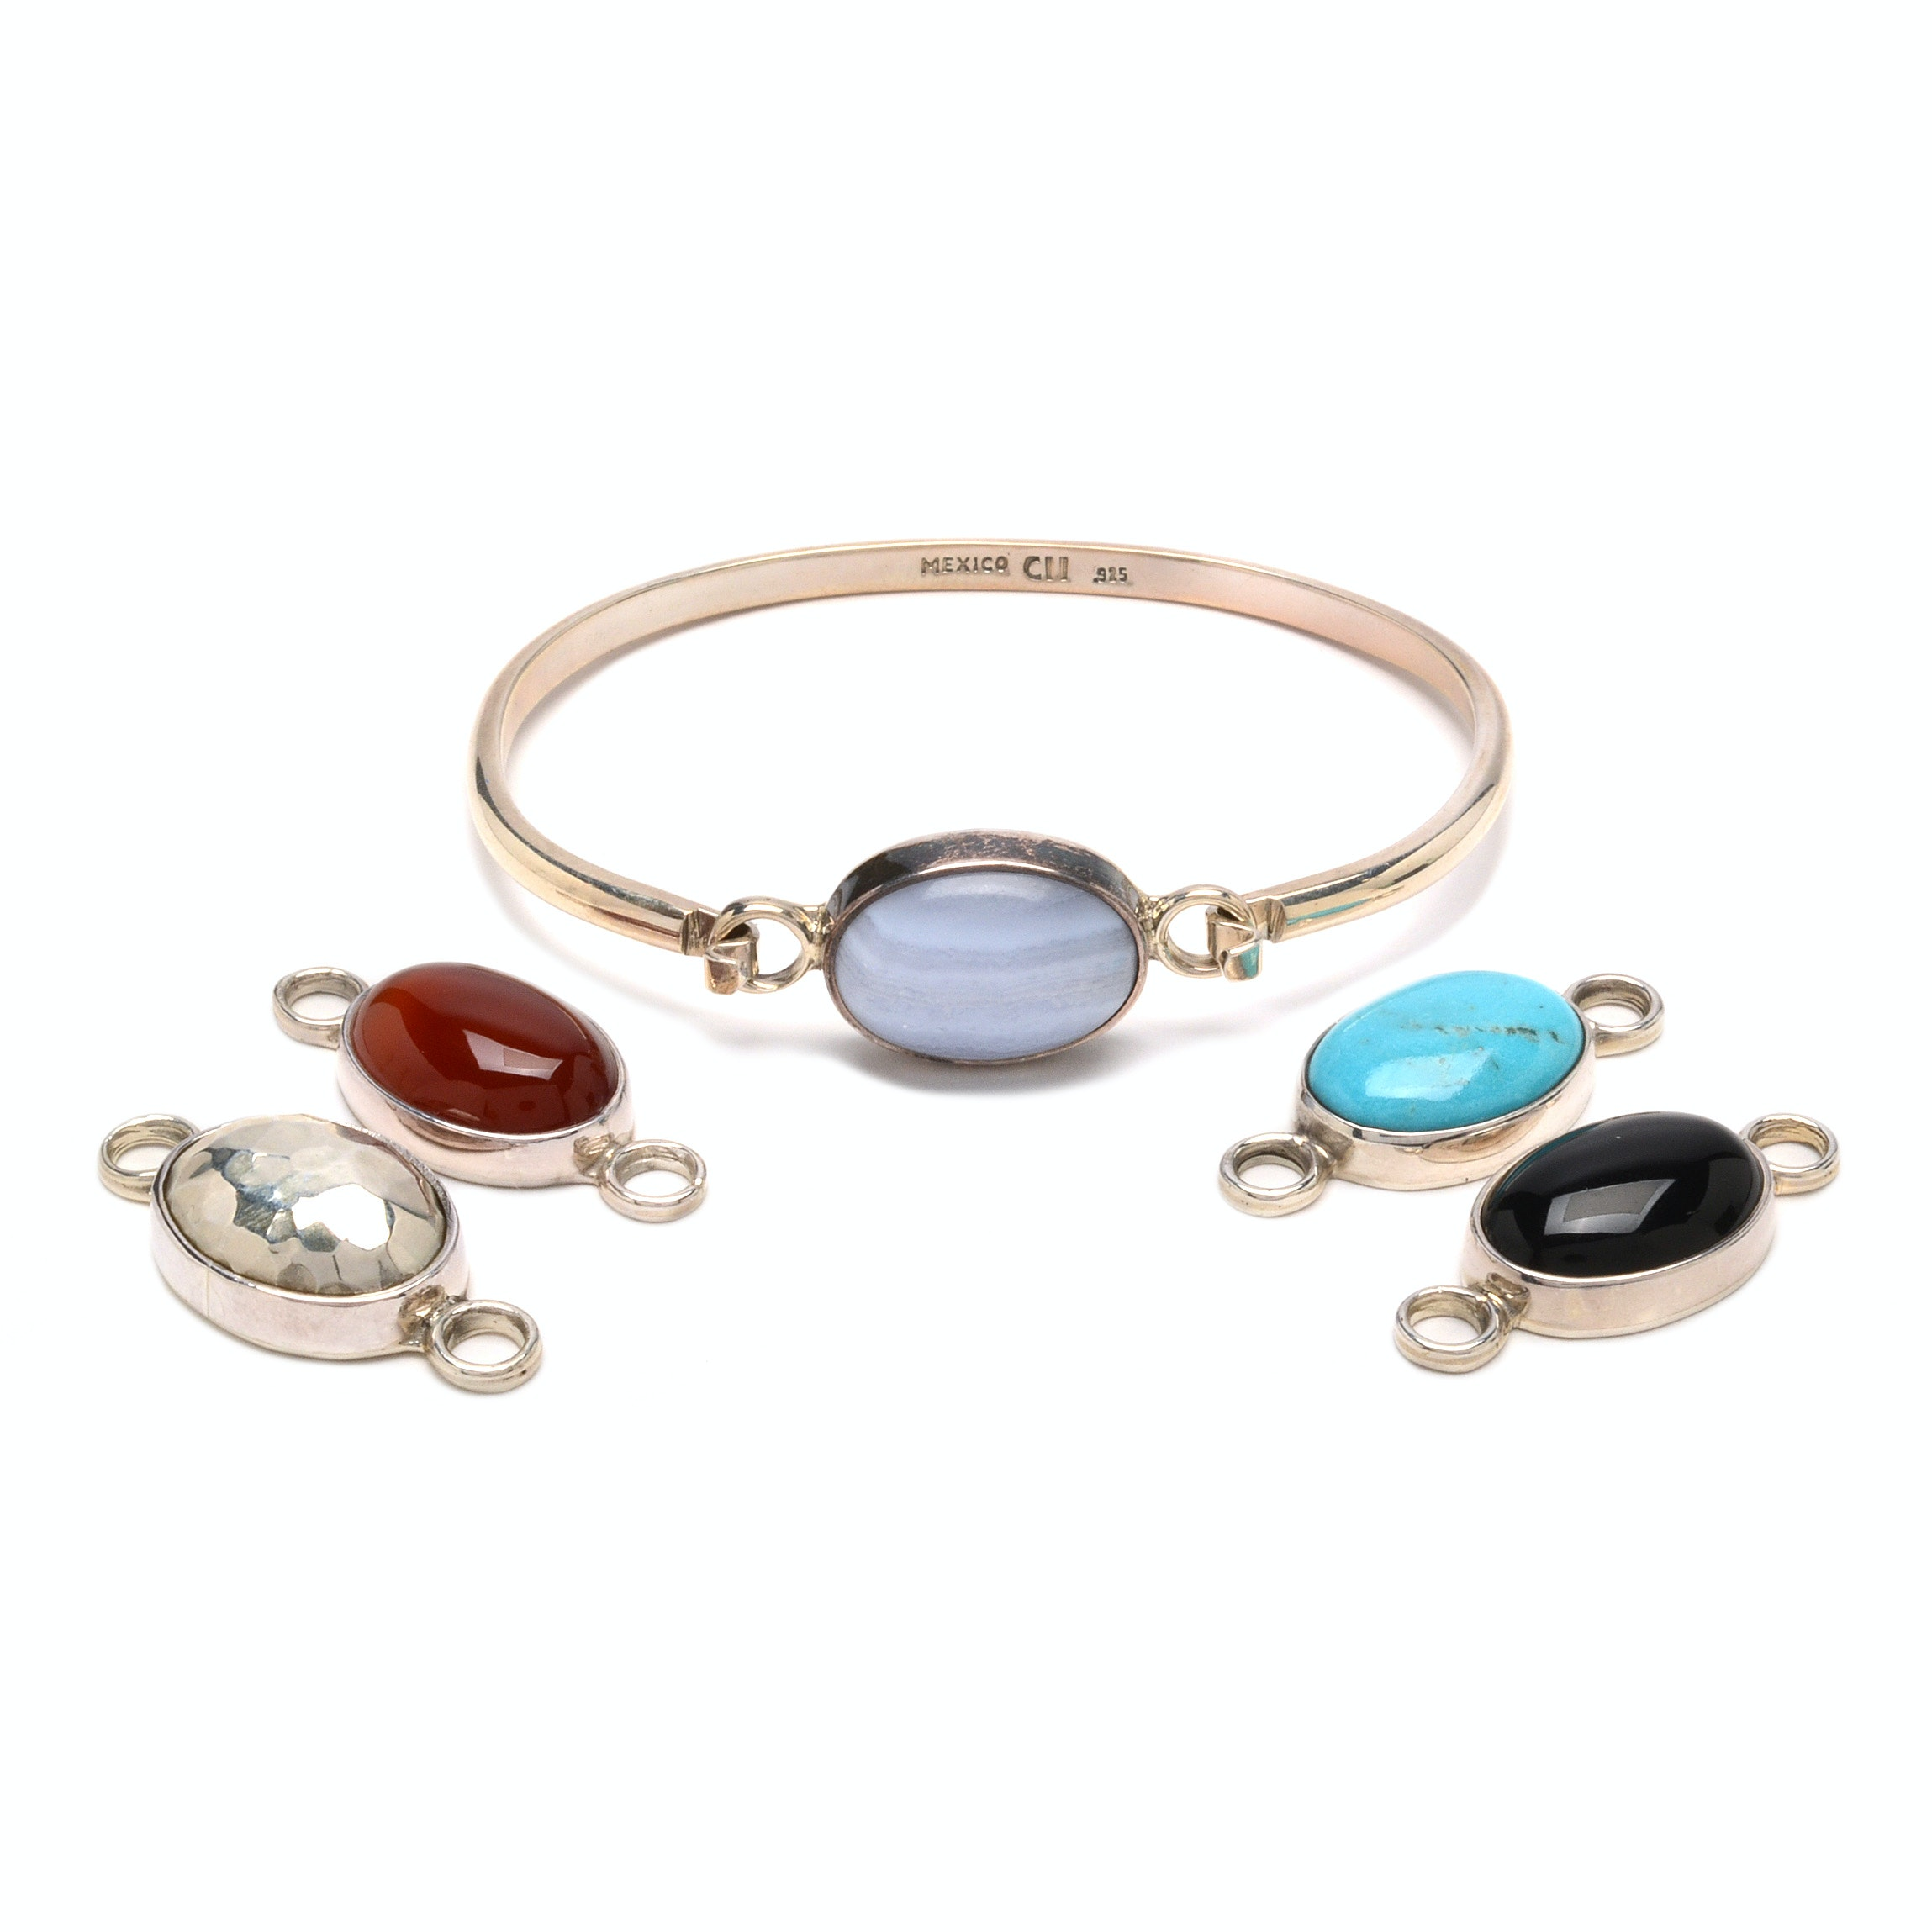 Sterling Silver Convertible Bracelet with Five Removable Clasps